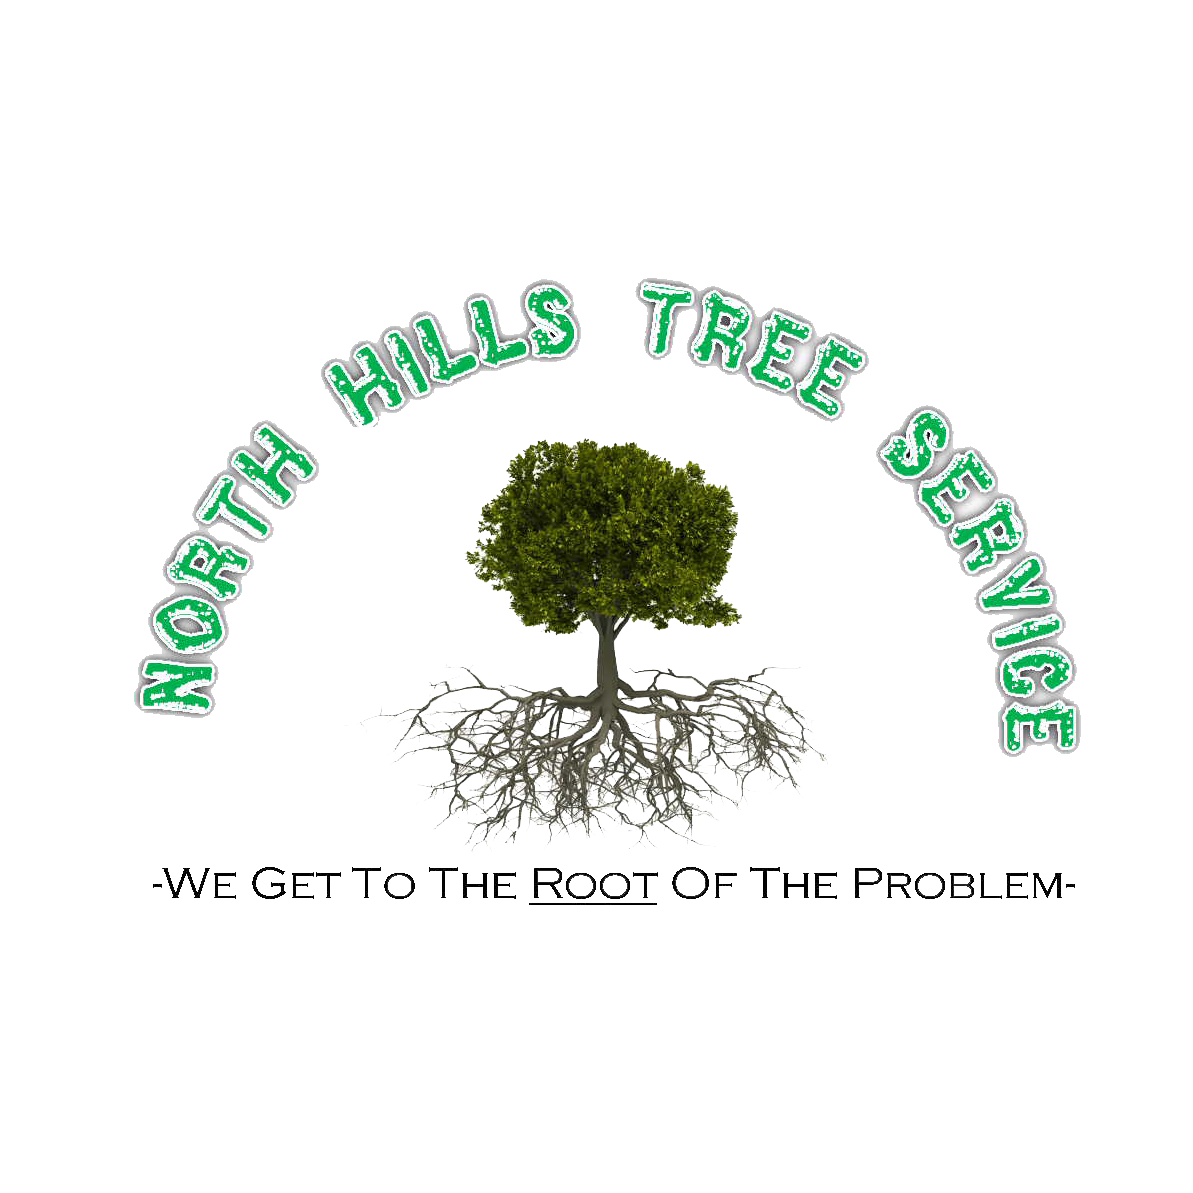 Tree Service in PA Gibsonia 15044 North Hills Tree Service 2073 Old State Rd  (724)935-4040